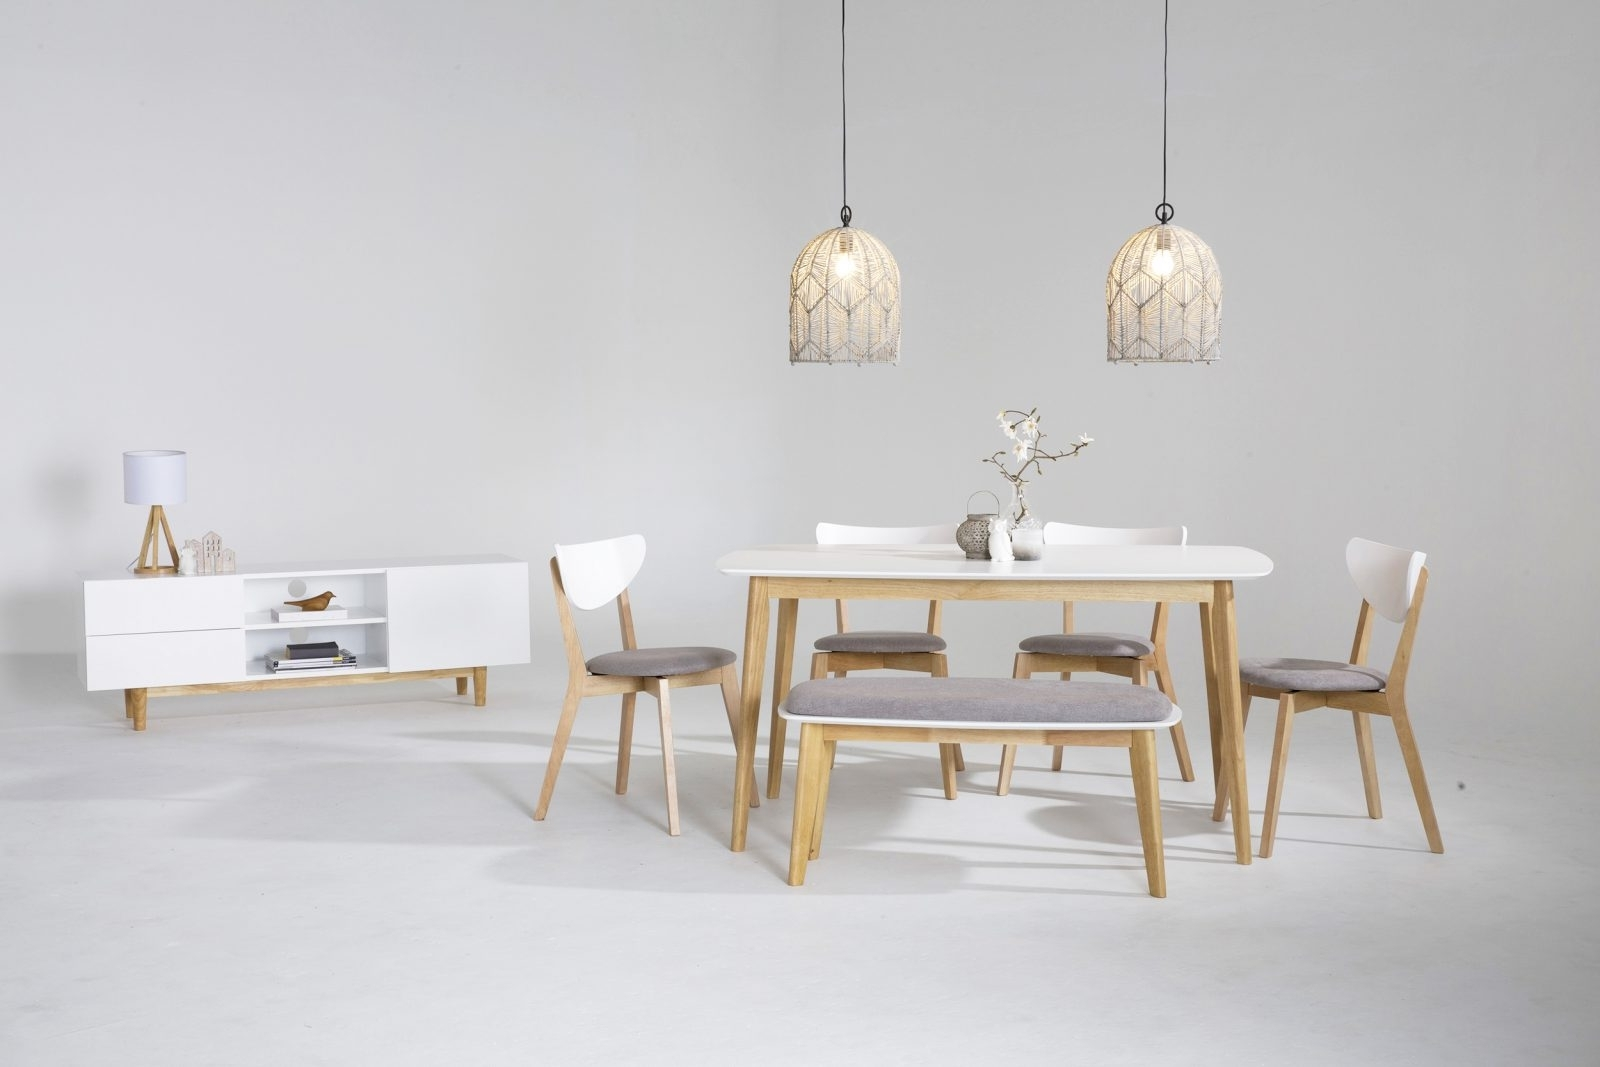 Scandinavian Dining Tables And Chairs Pertaining To Well Liked Scandinavian Dining Room Furniture Ideas (View 18 of 25)